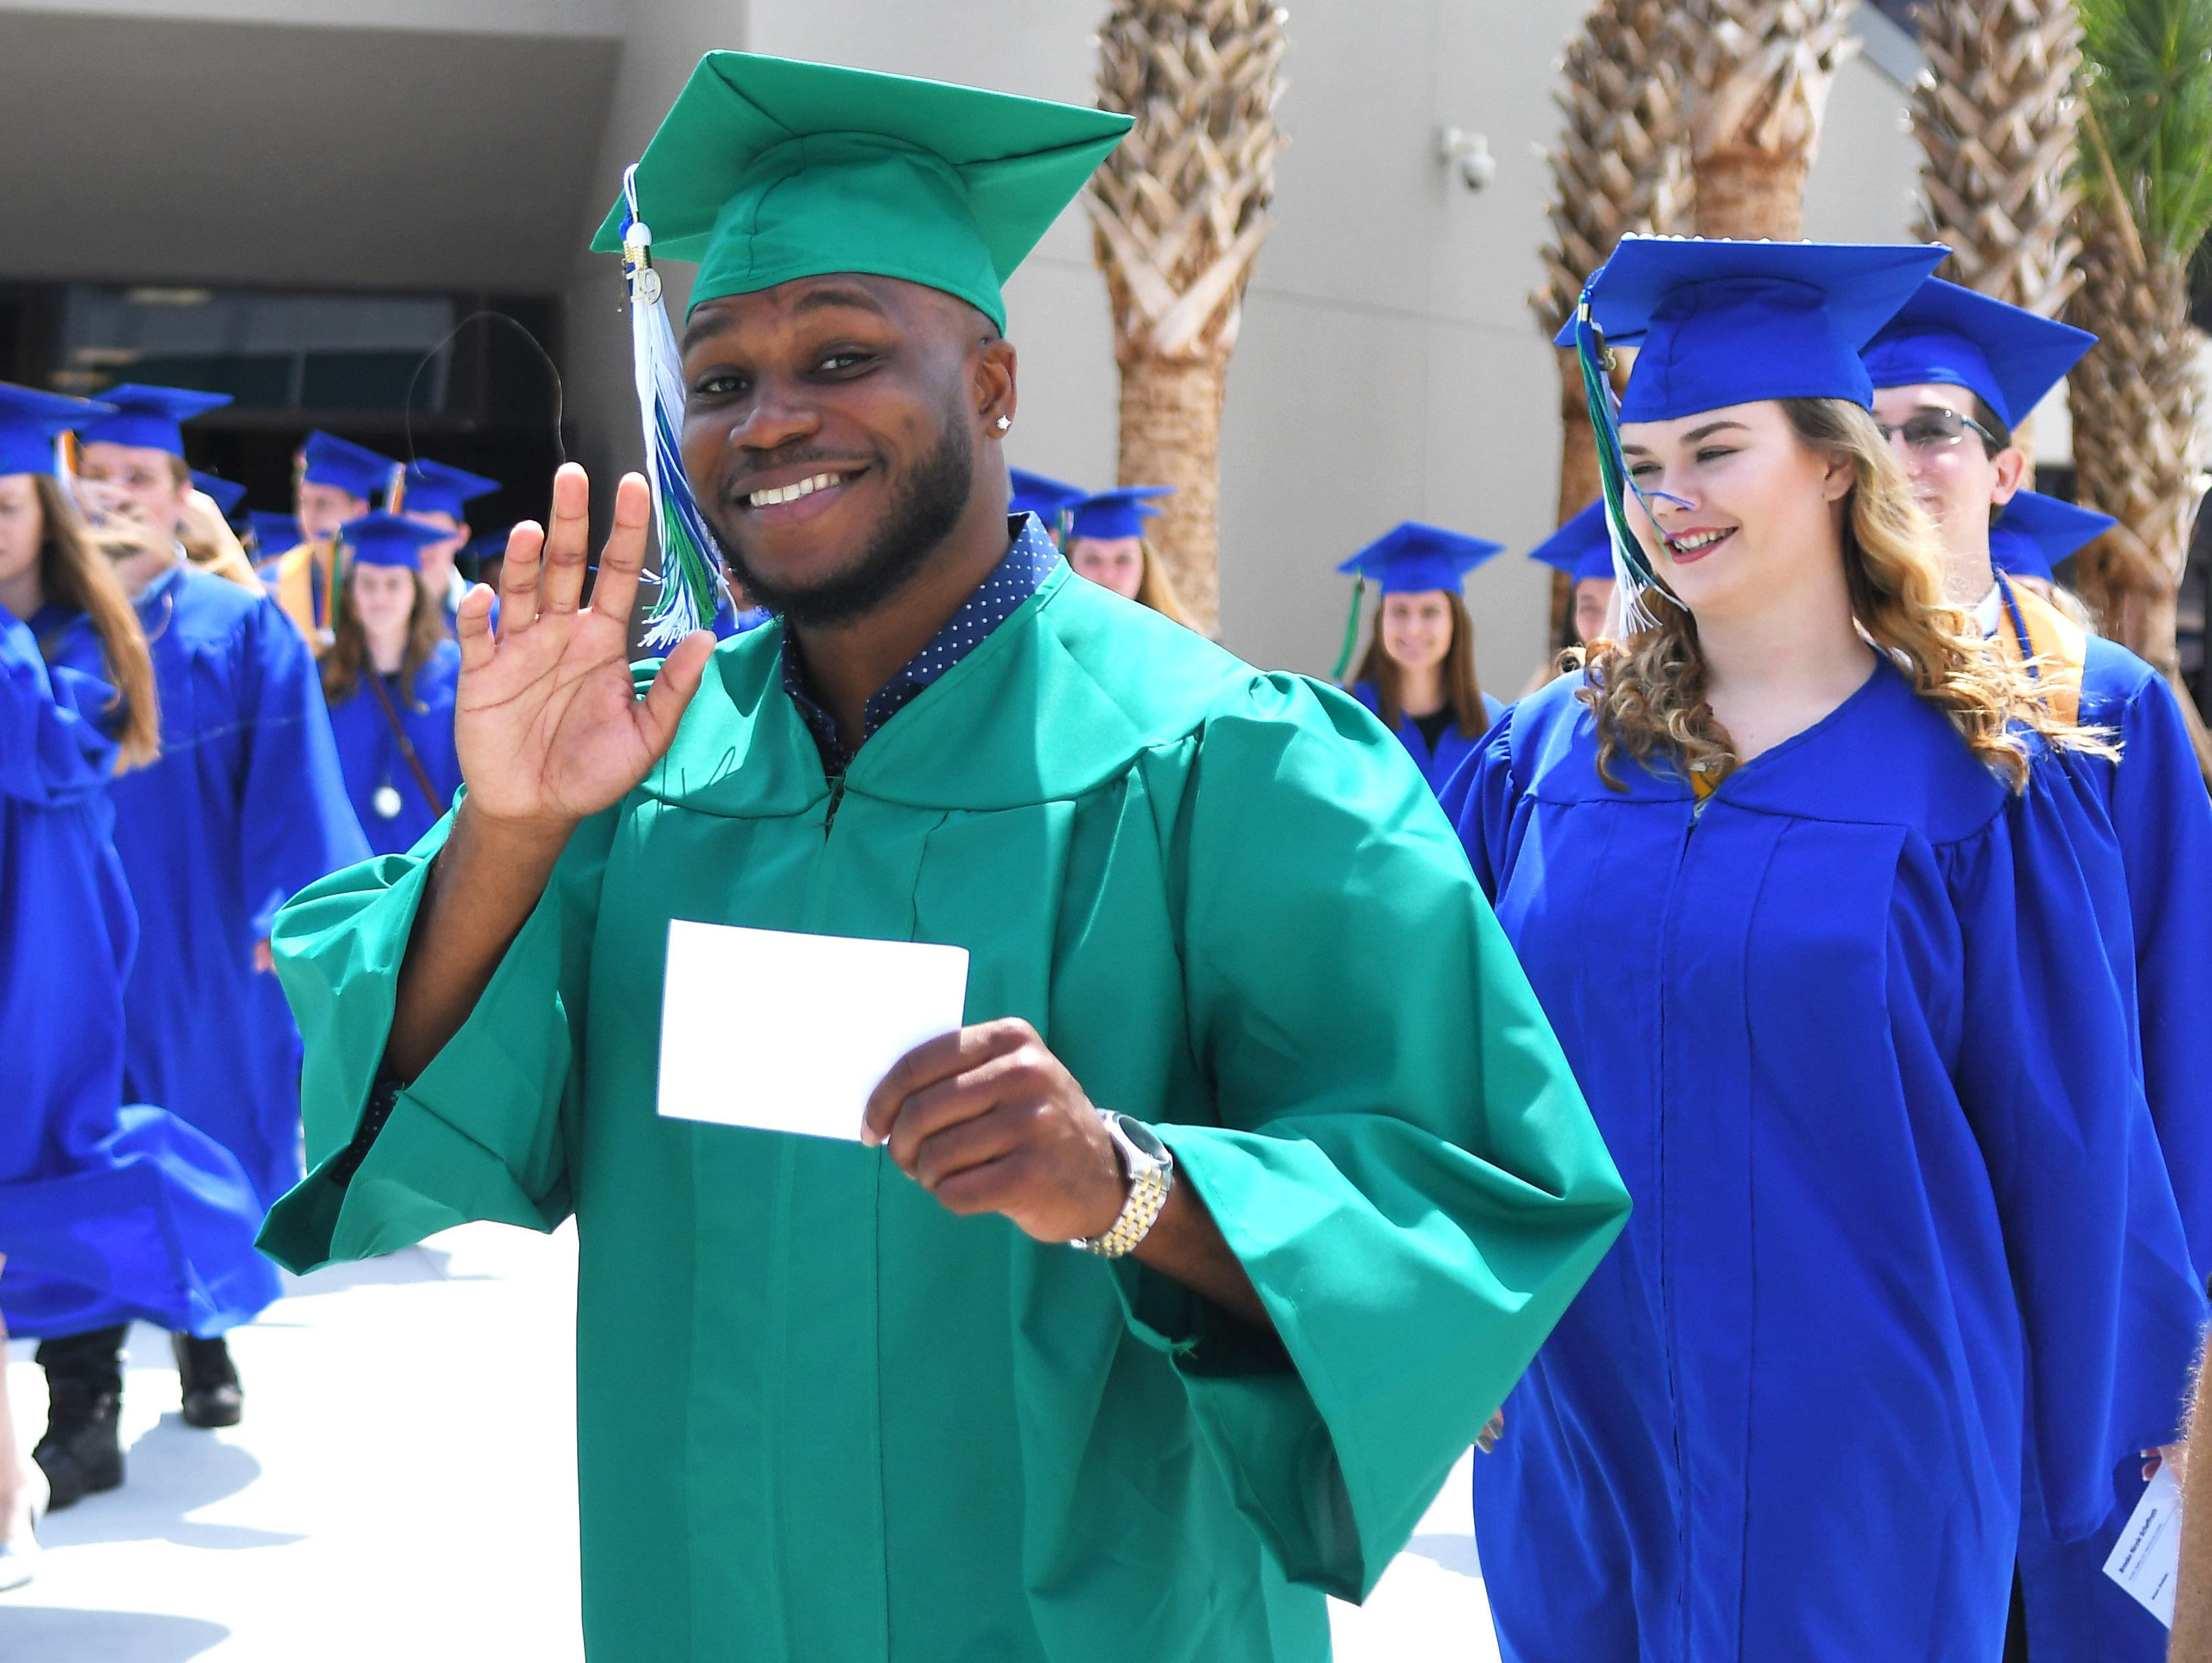 EFSC's 1,000th Bachelor's degree graduate is Derick Pierre. Graduates at the noon Eastern Florida State College 2019 Spring Commencement at the Melbourne campus. An additional commencement was held at 3:00 p.m.